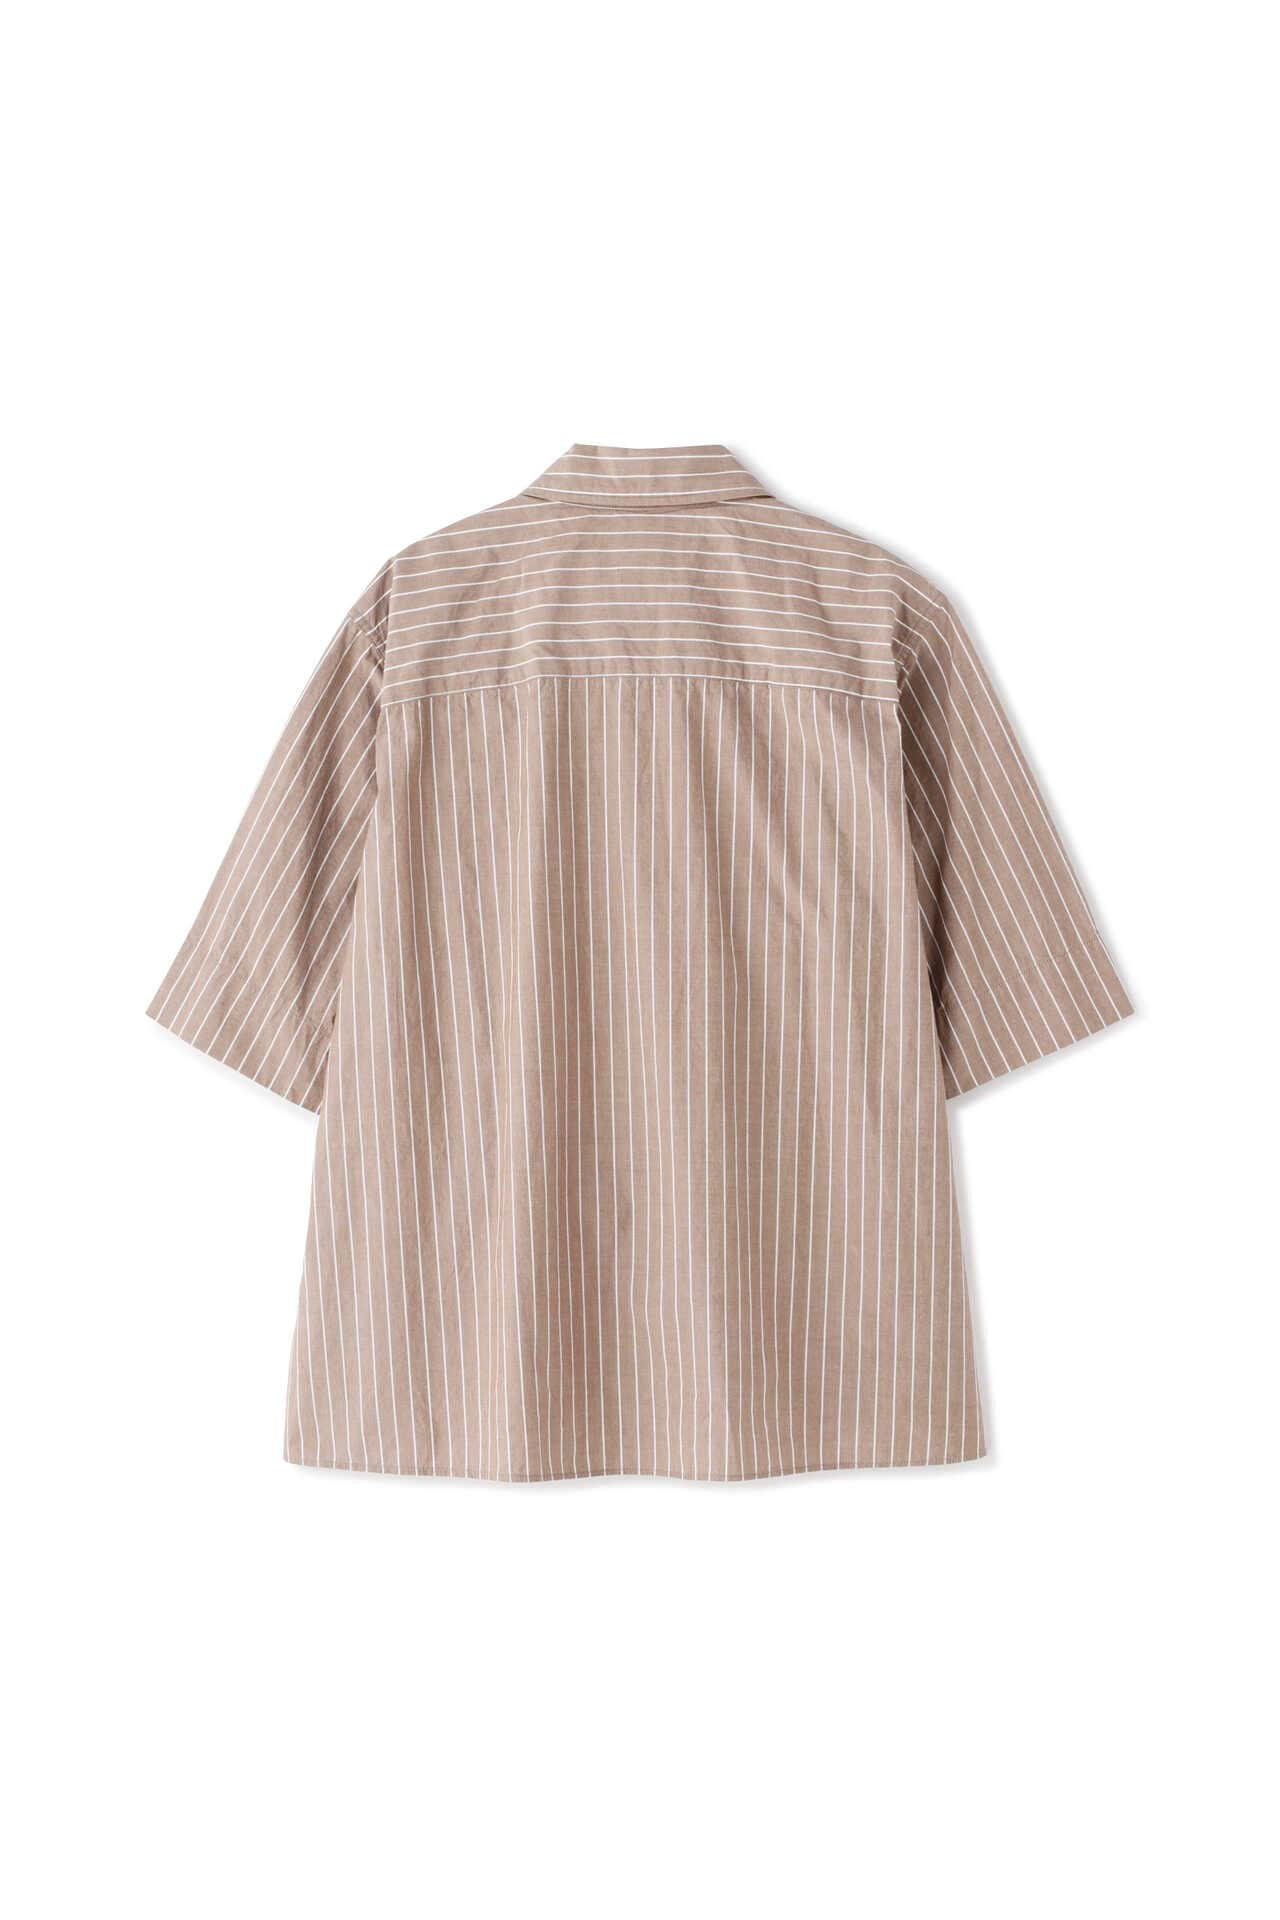 WASHED STRIPE COTTON8